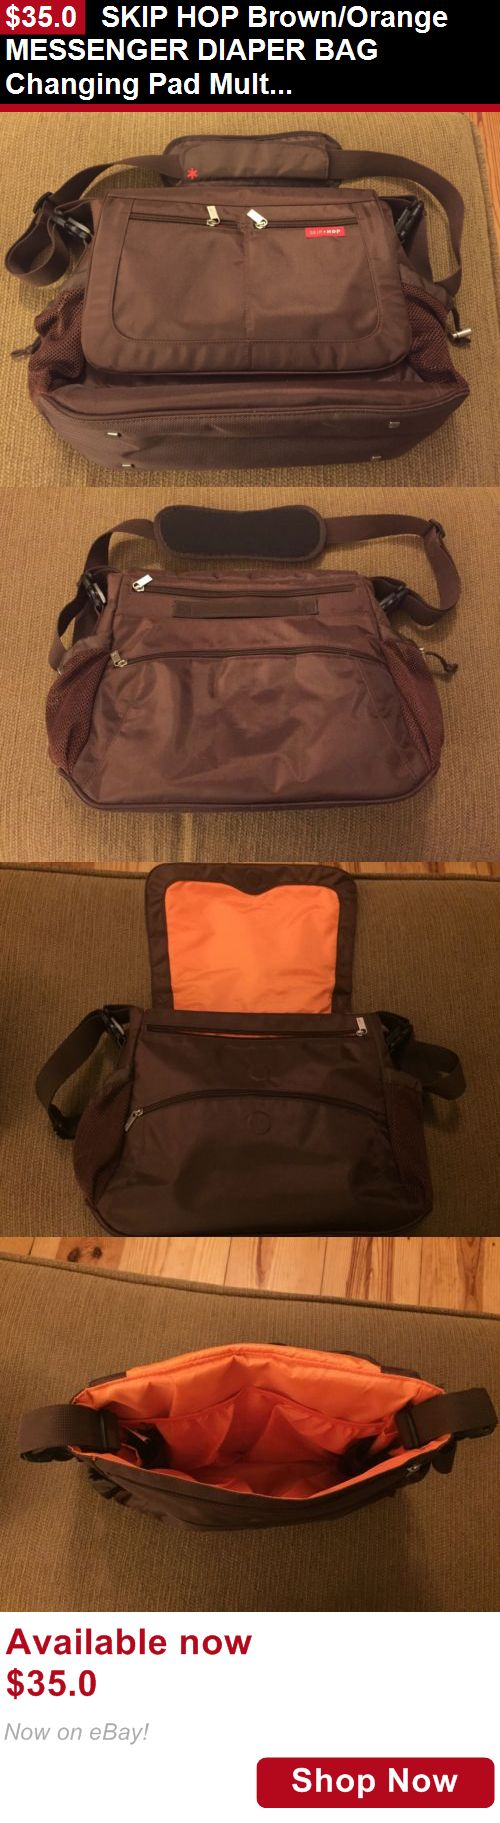 Baby Diaper Bags: Skip Hop Brown/Orange Messenger Diaper Bag Changing Pad Multi Pockets! BUY IT NOW ONLY: $35.0